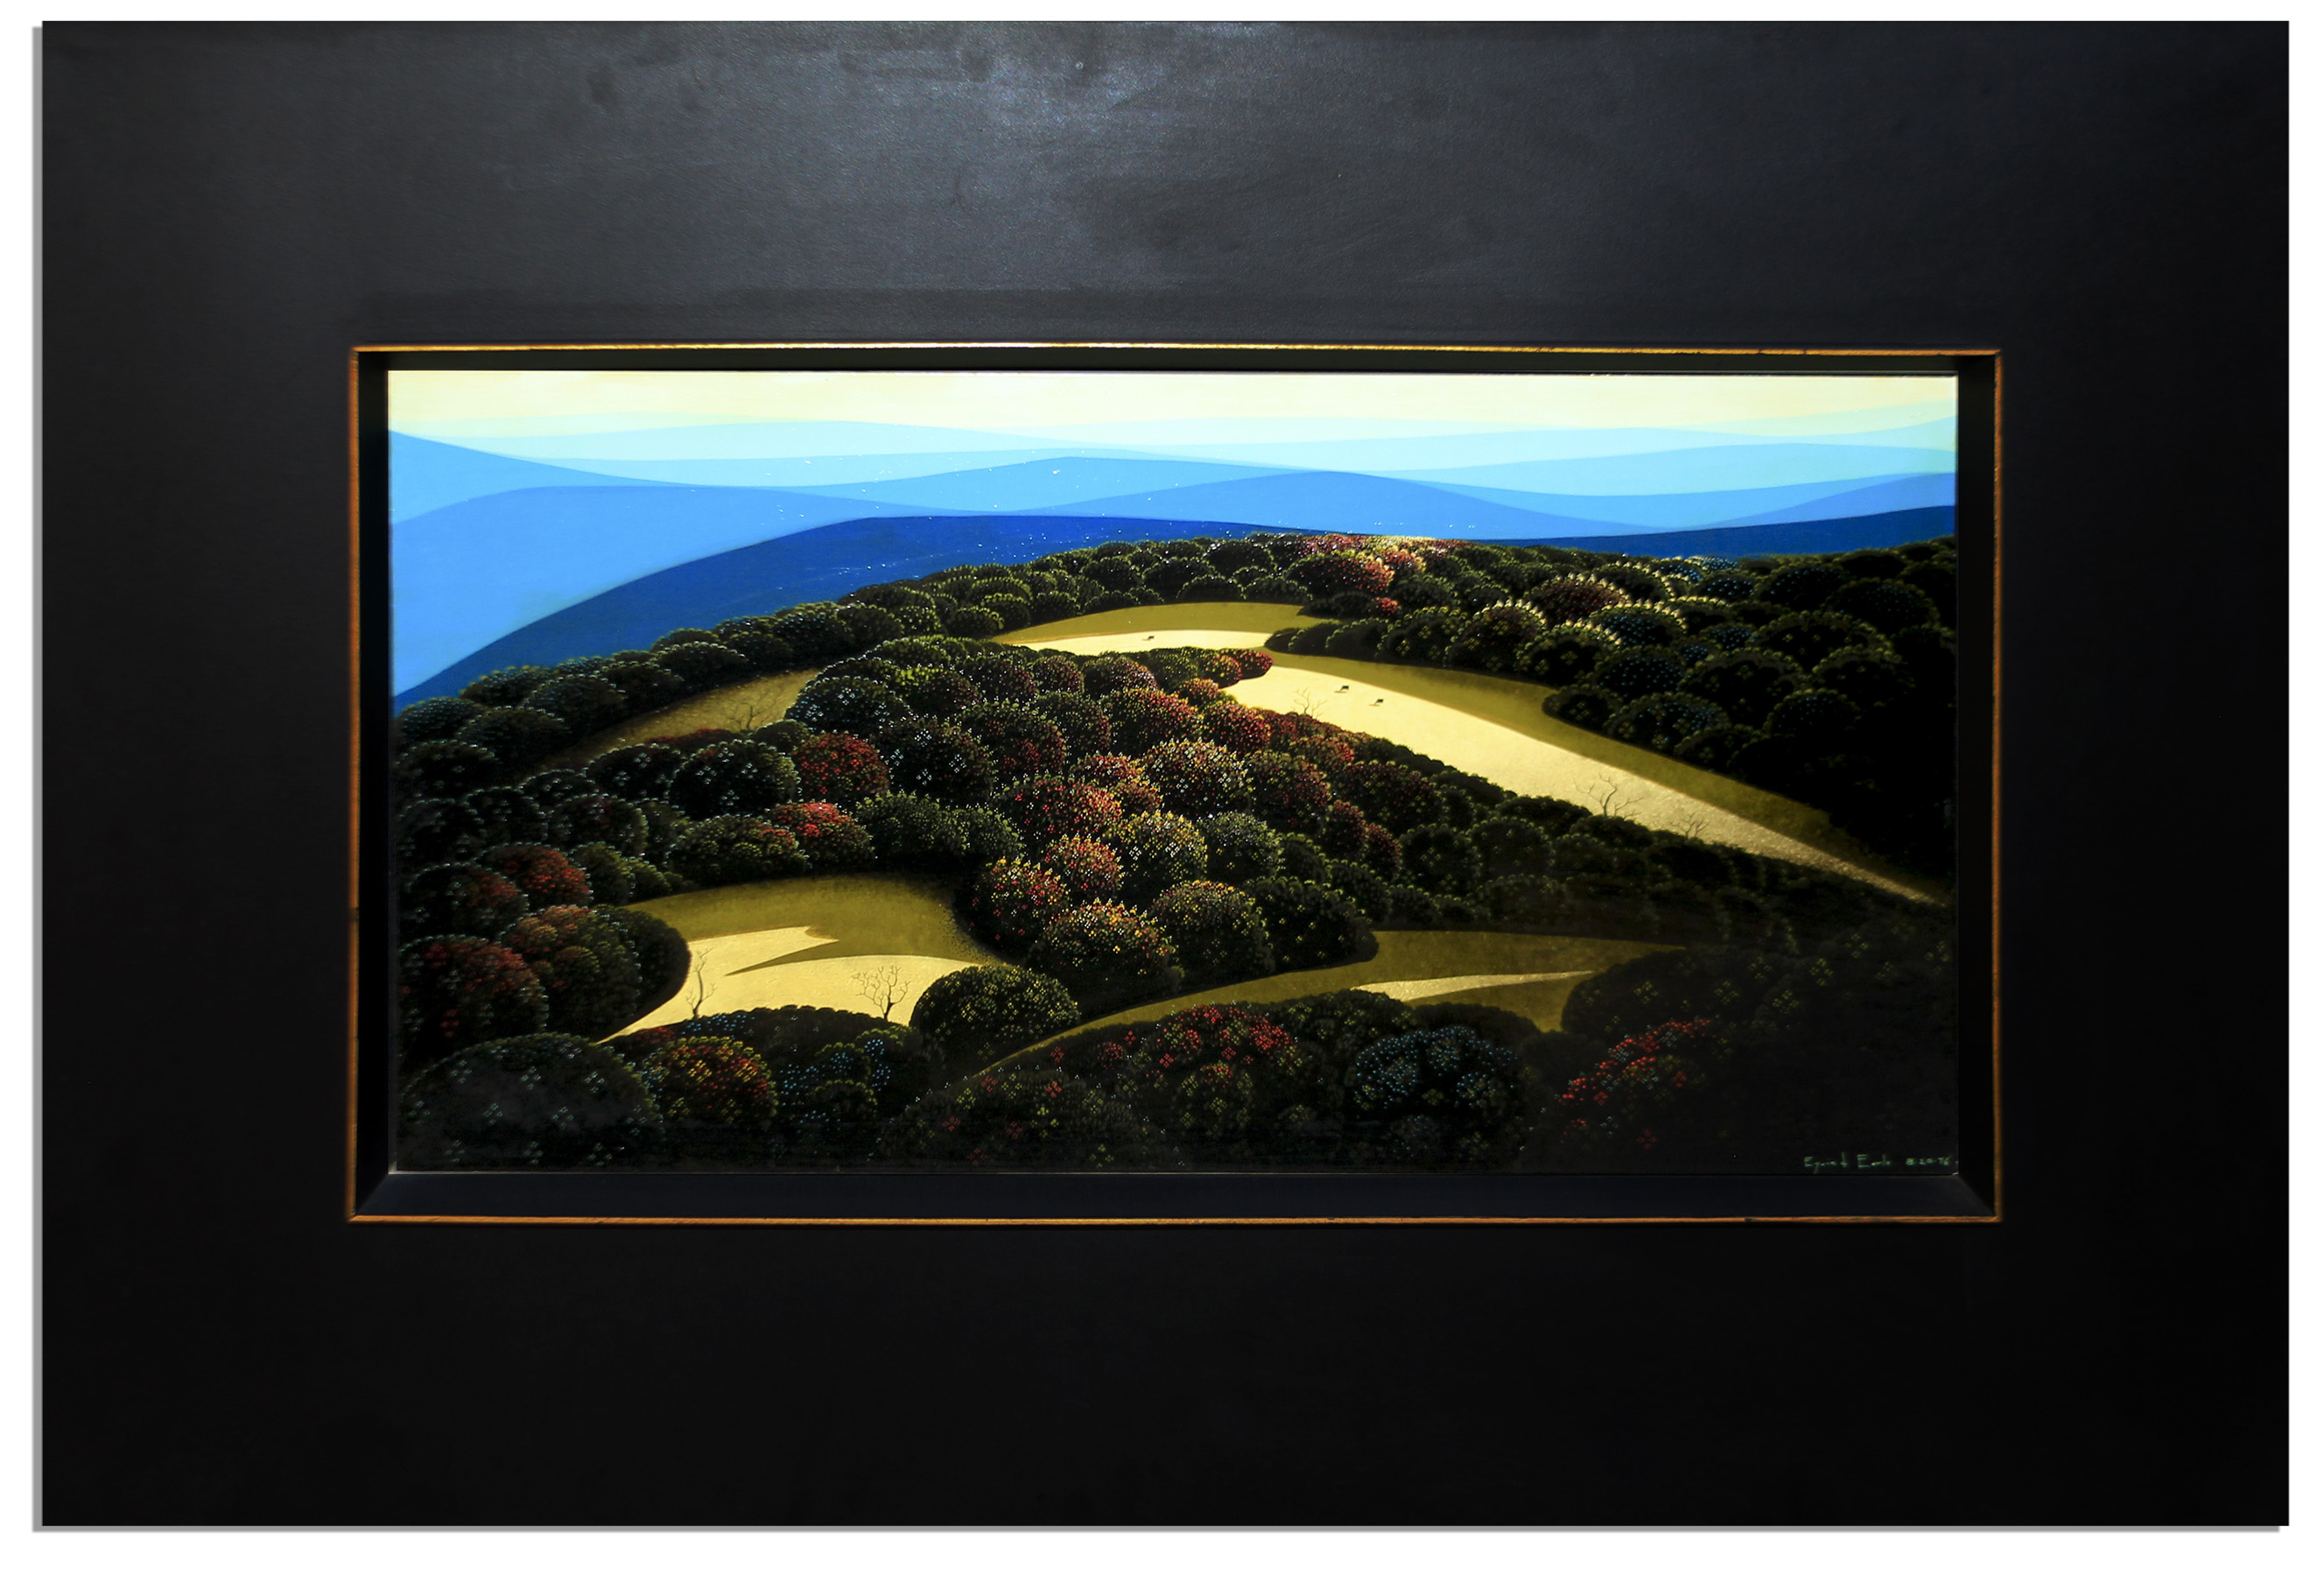 Eyvind Earle Art Eyvind Earle Large Oil Painting From Ray Bradbury's Personal Estate